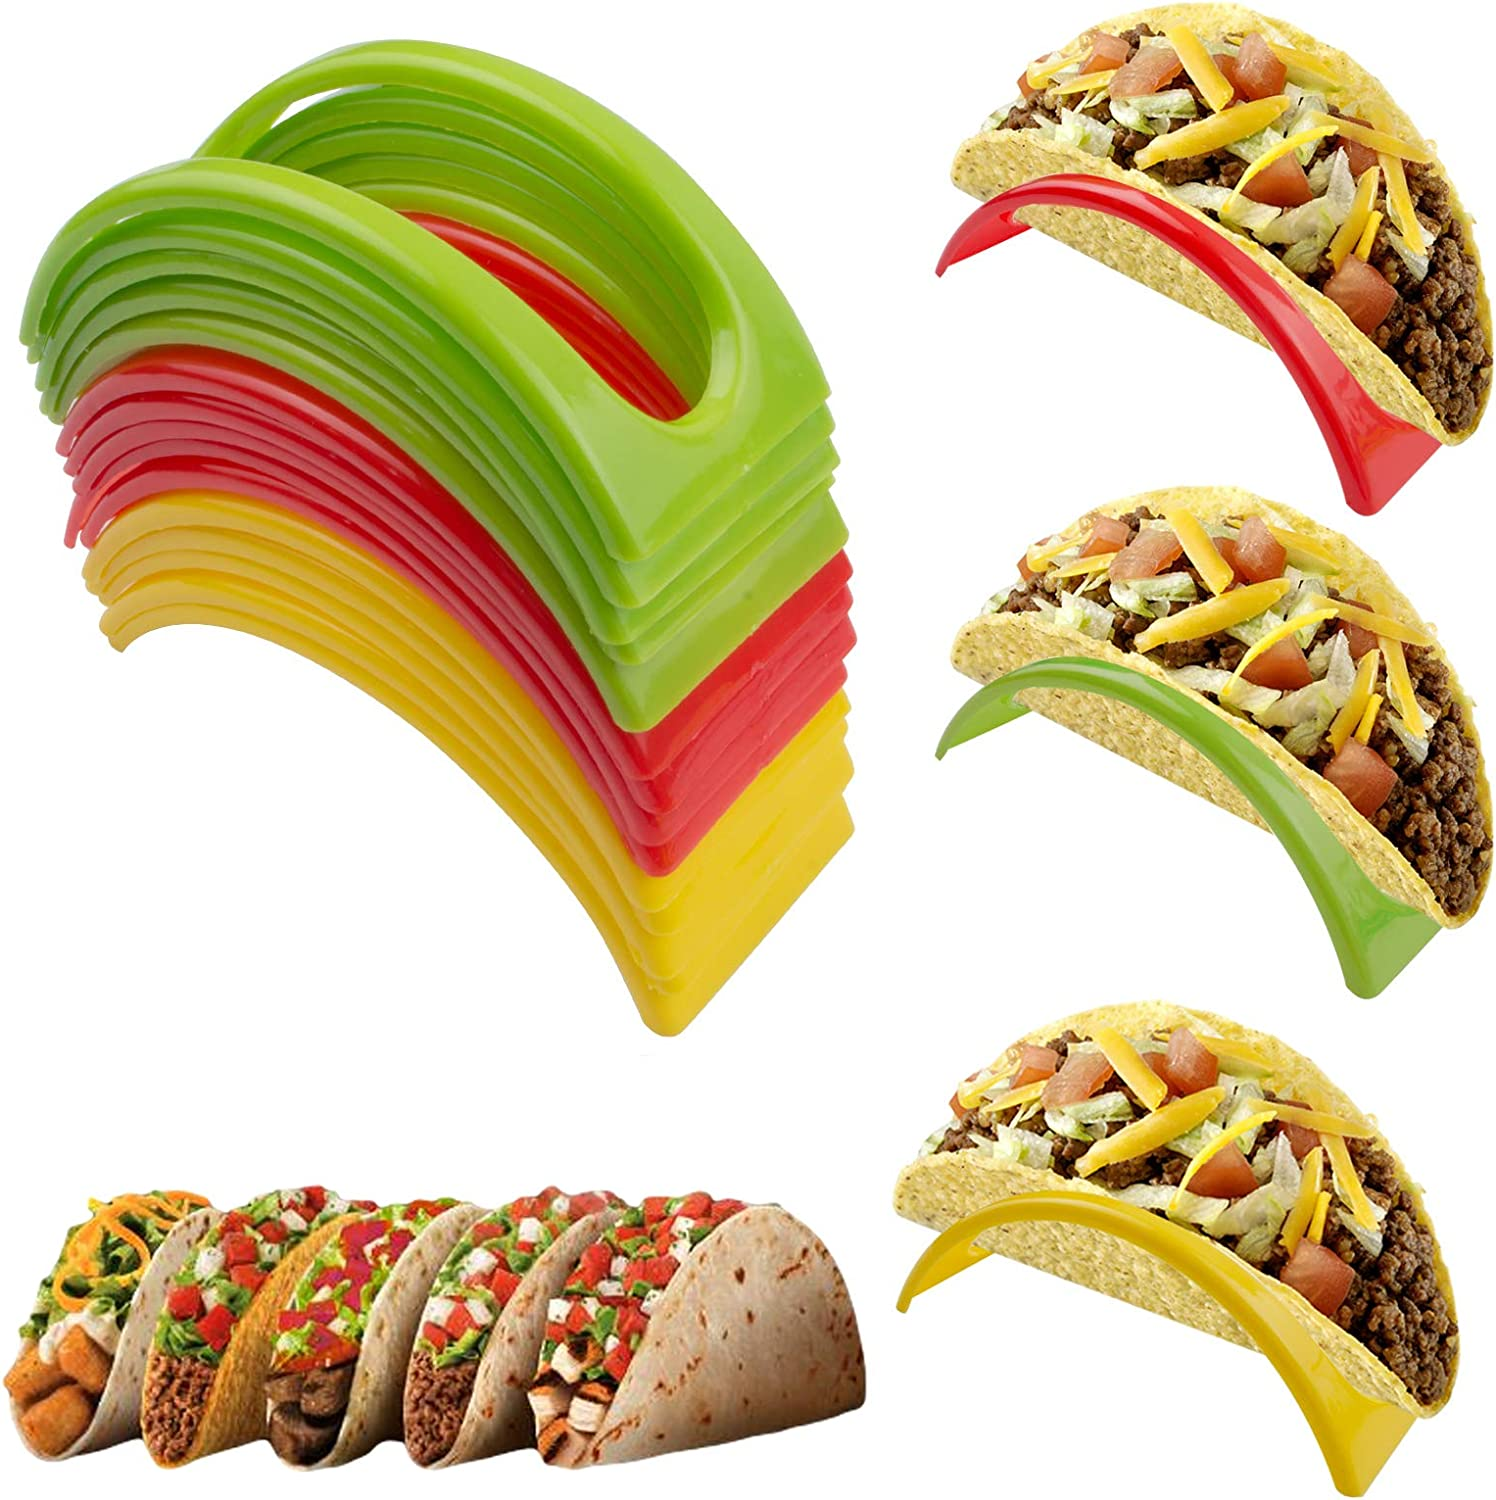 24 Pcs Taco Holders, BPA Free Taco Holder Stand, Taco Tray Taco Shell Holder, Microwave Safe Taco Rack Taco Plate for Taco Tuesday Taco Bar Taco Party Supplies (Red, Yellow, Green)